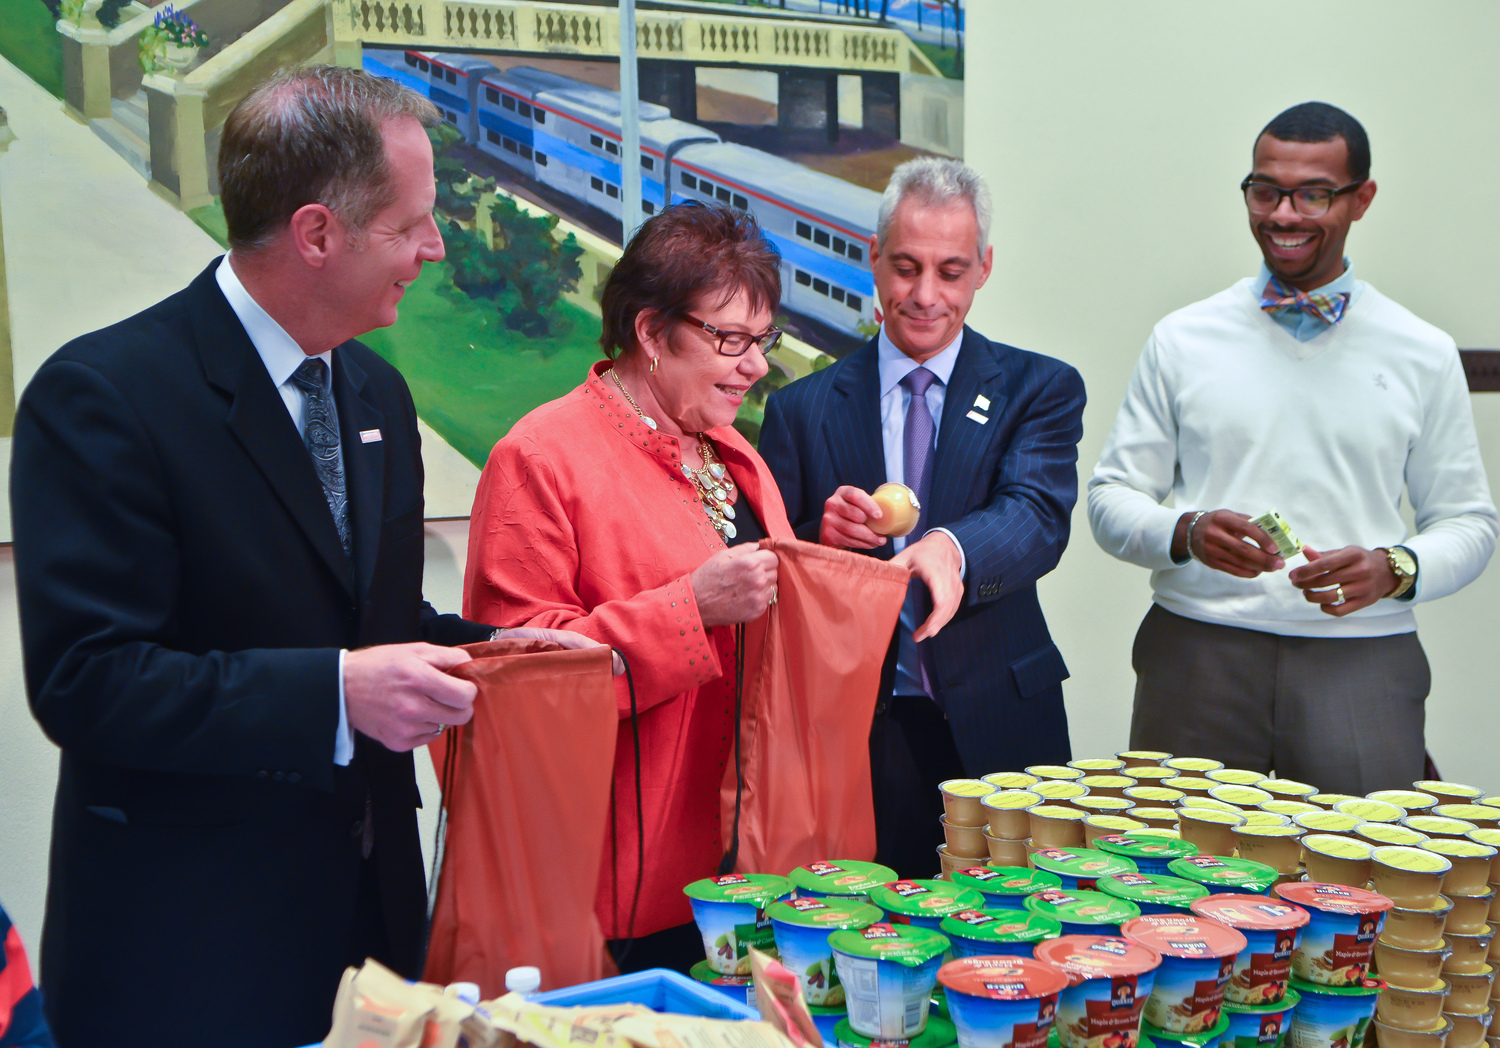 Mayors Making a Difference in Their Communities